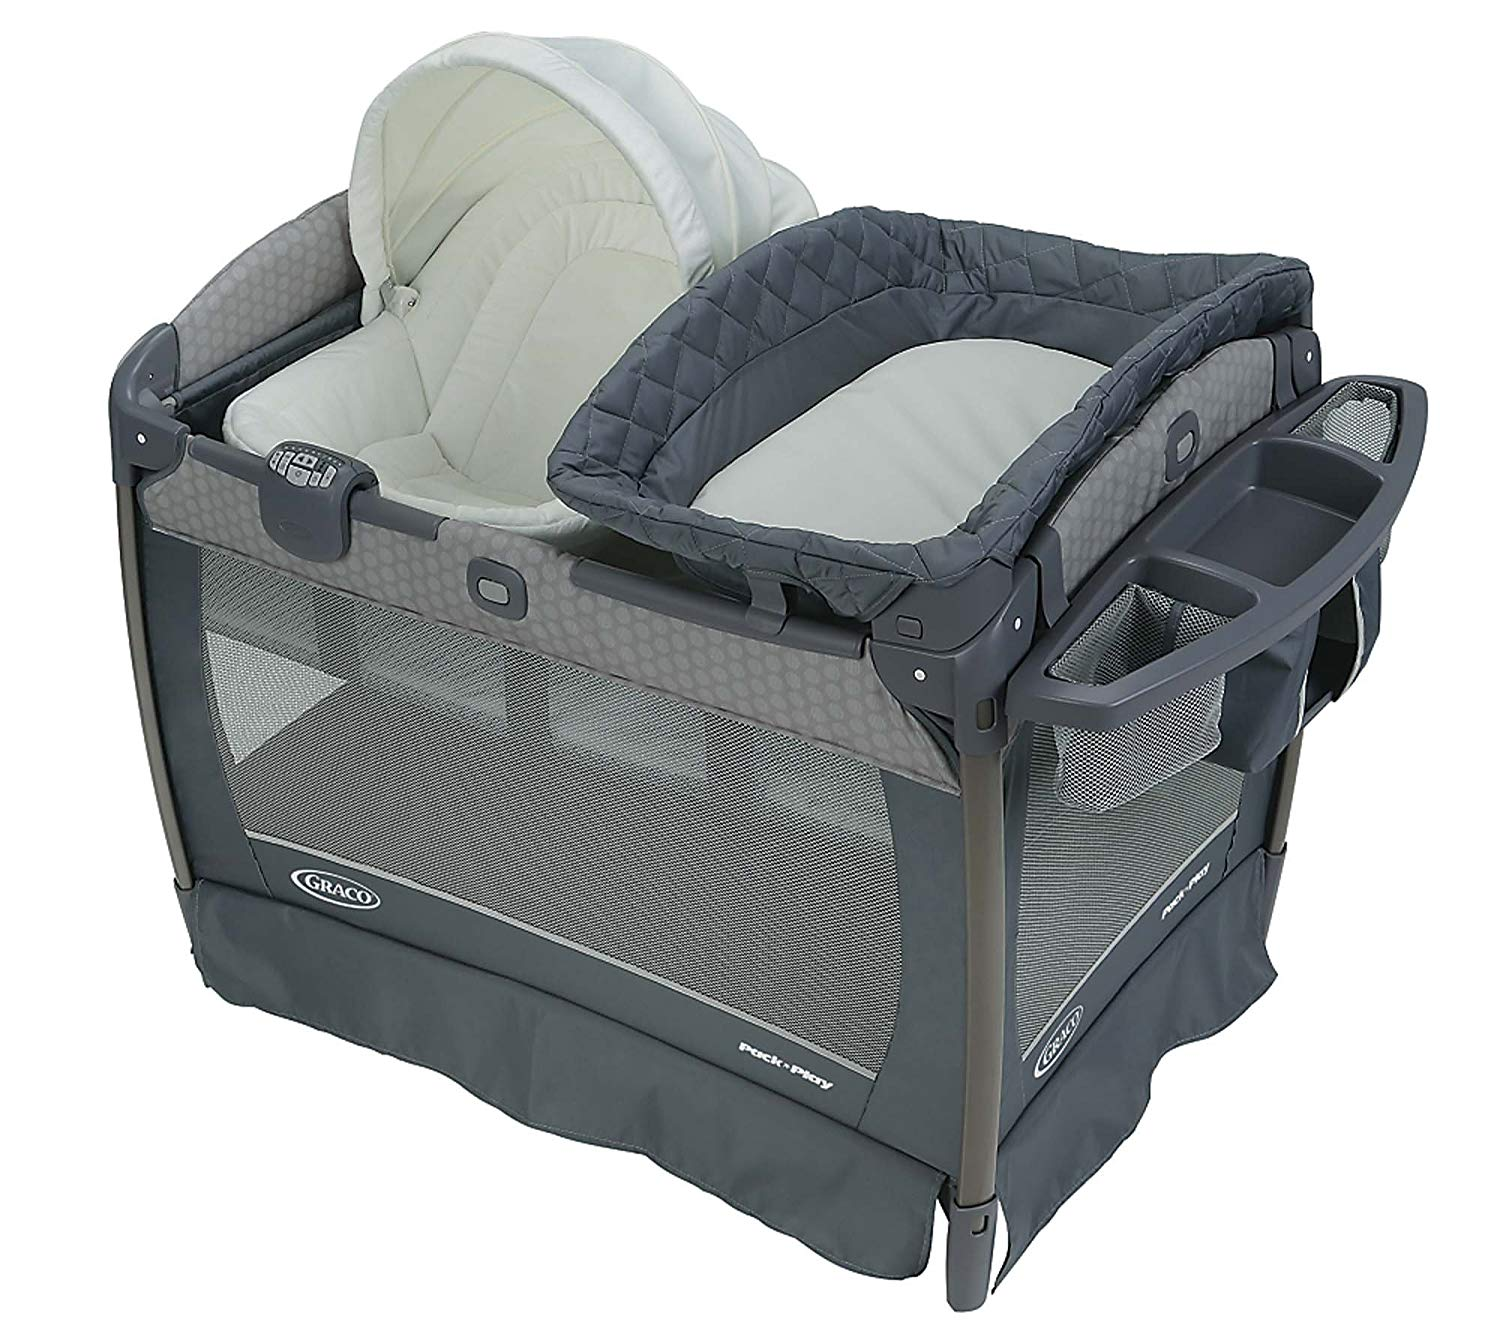 GRACO practicuna Nuzzle Nest Oasis